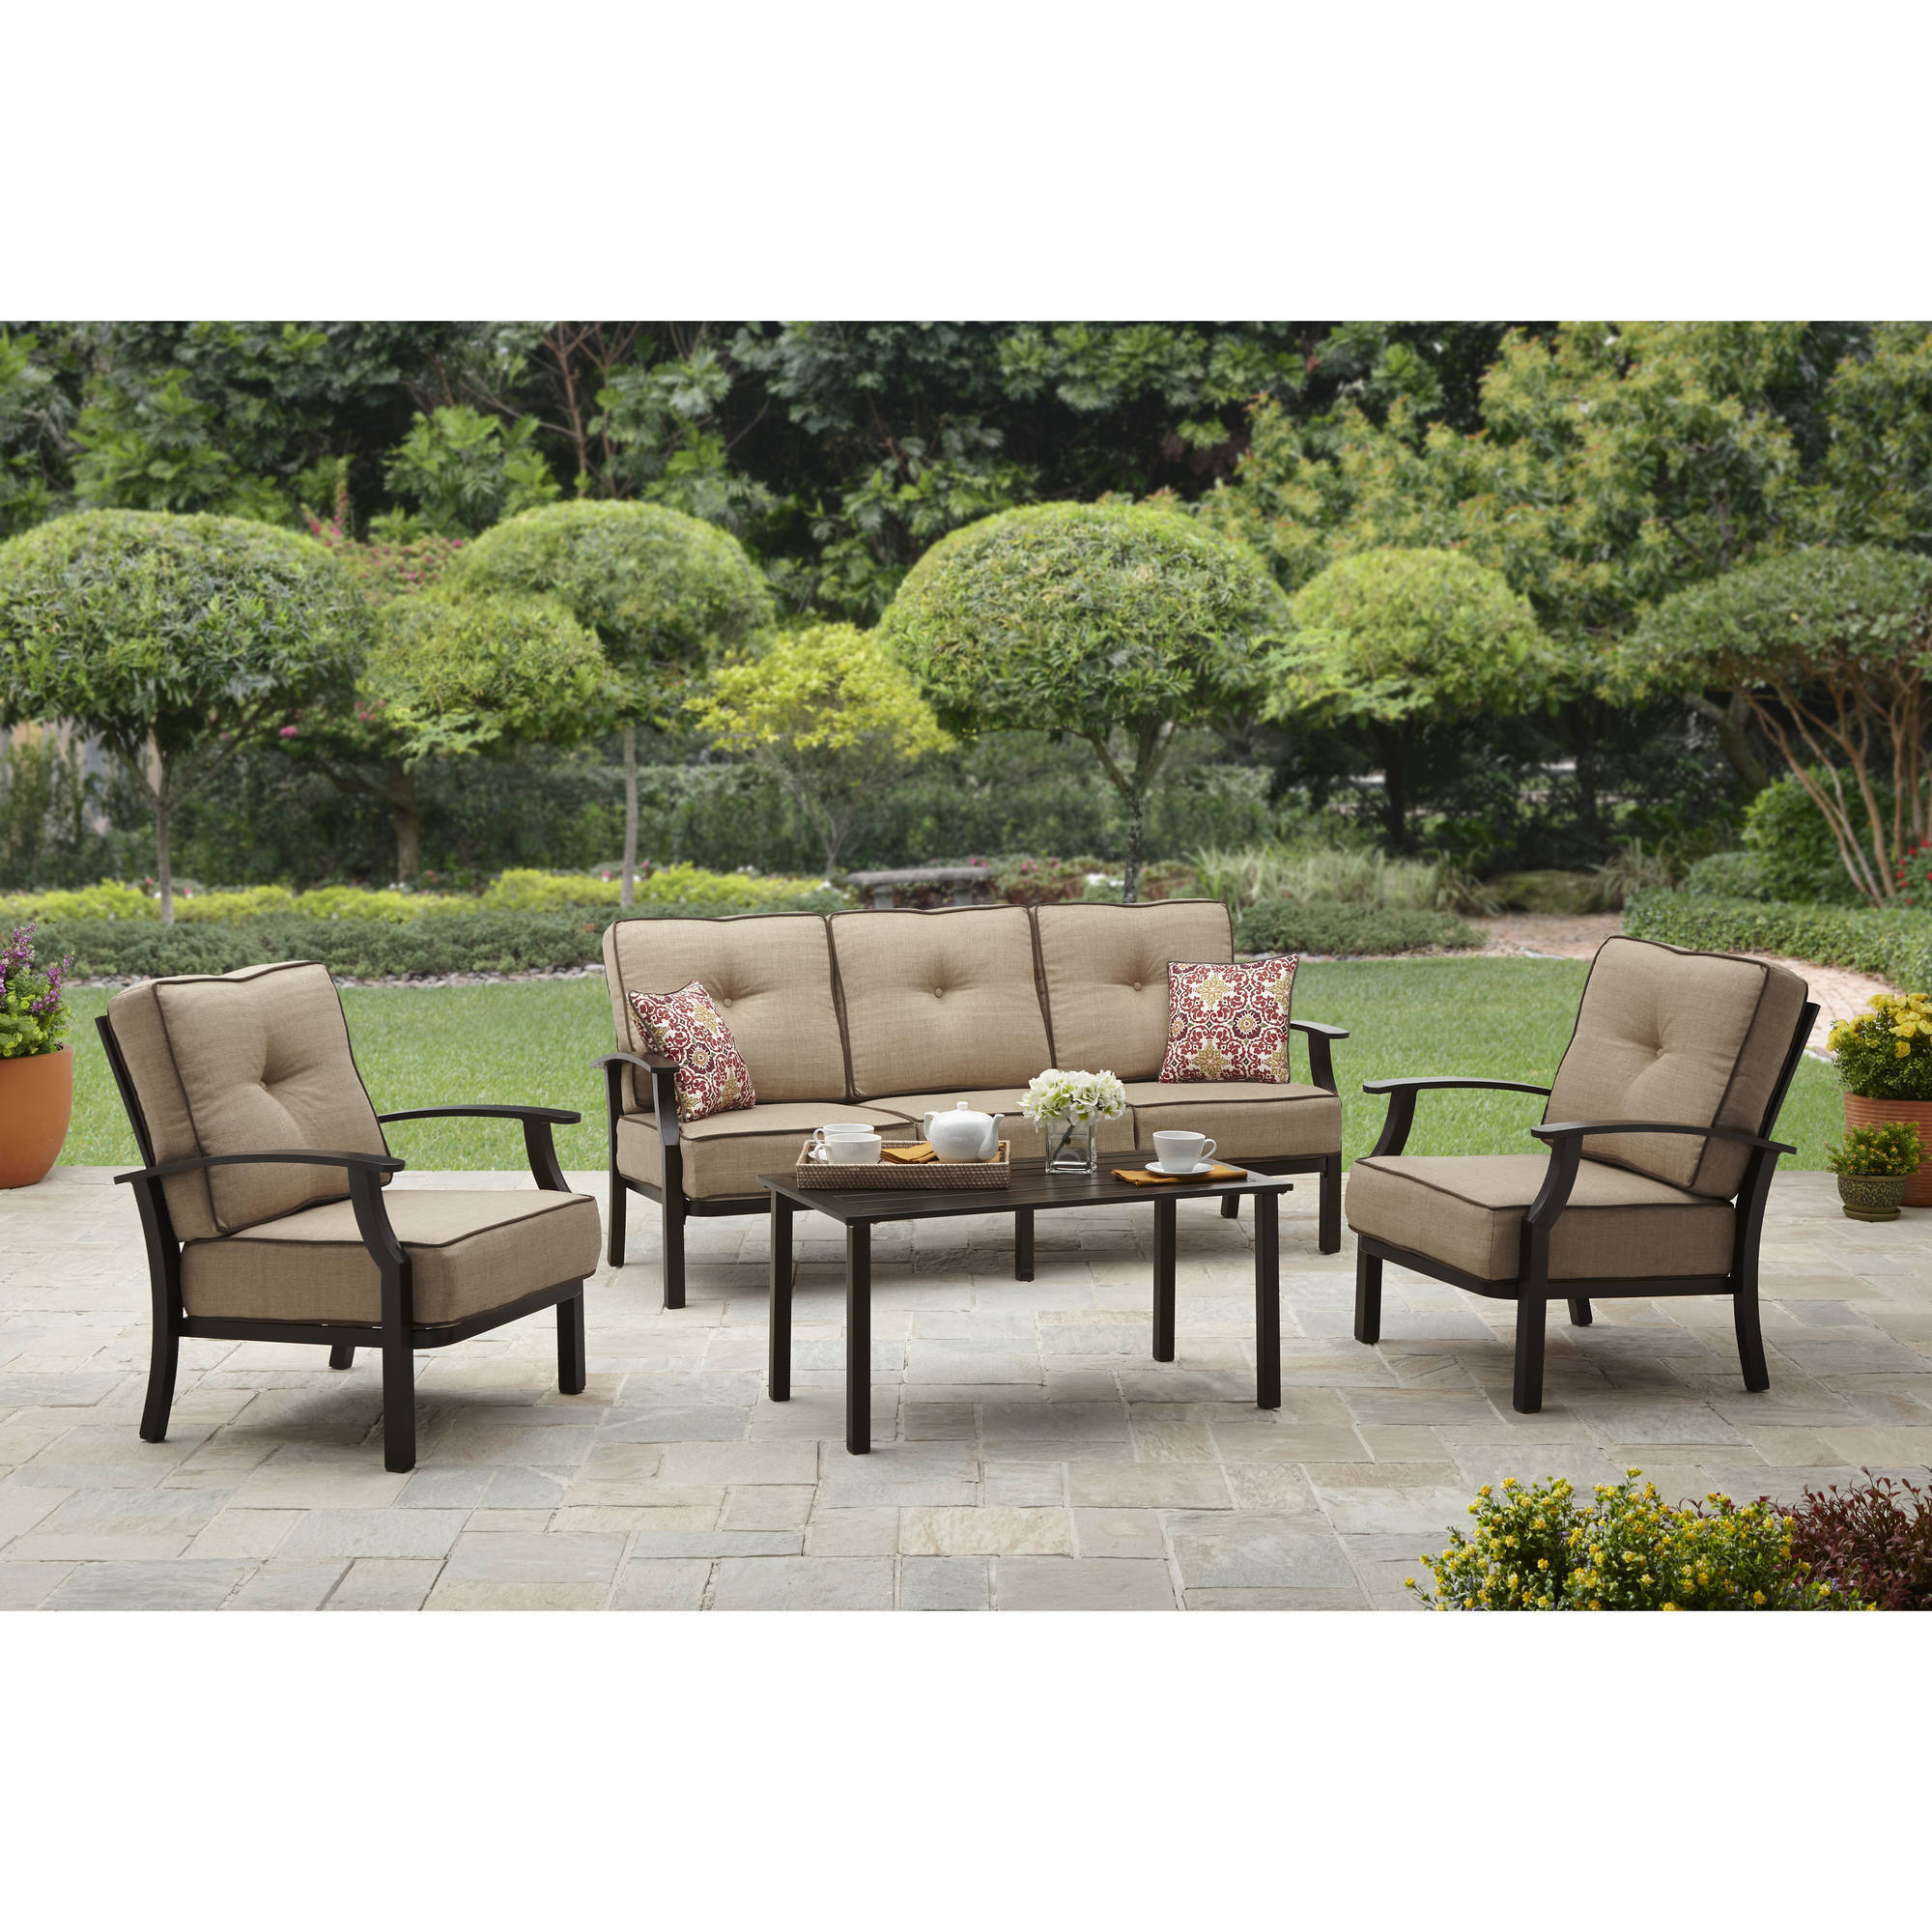 Charming Better Homes And Garden Carter Hills Outdoor Conversation Set, Seats 5